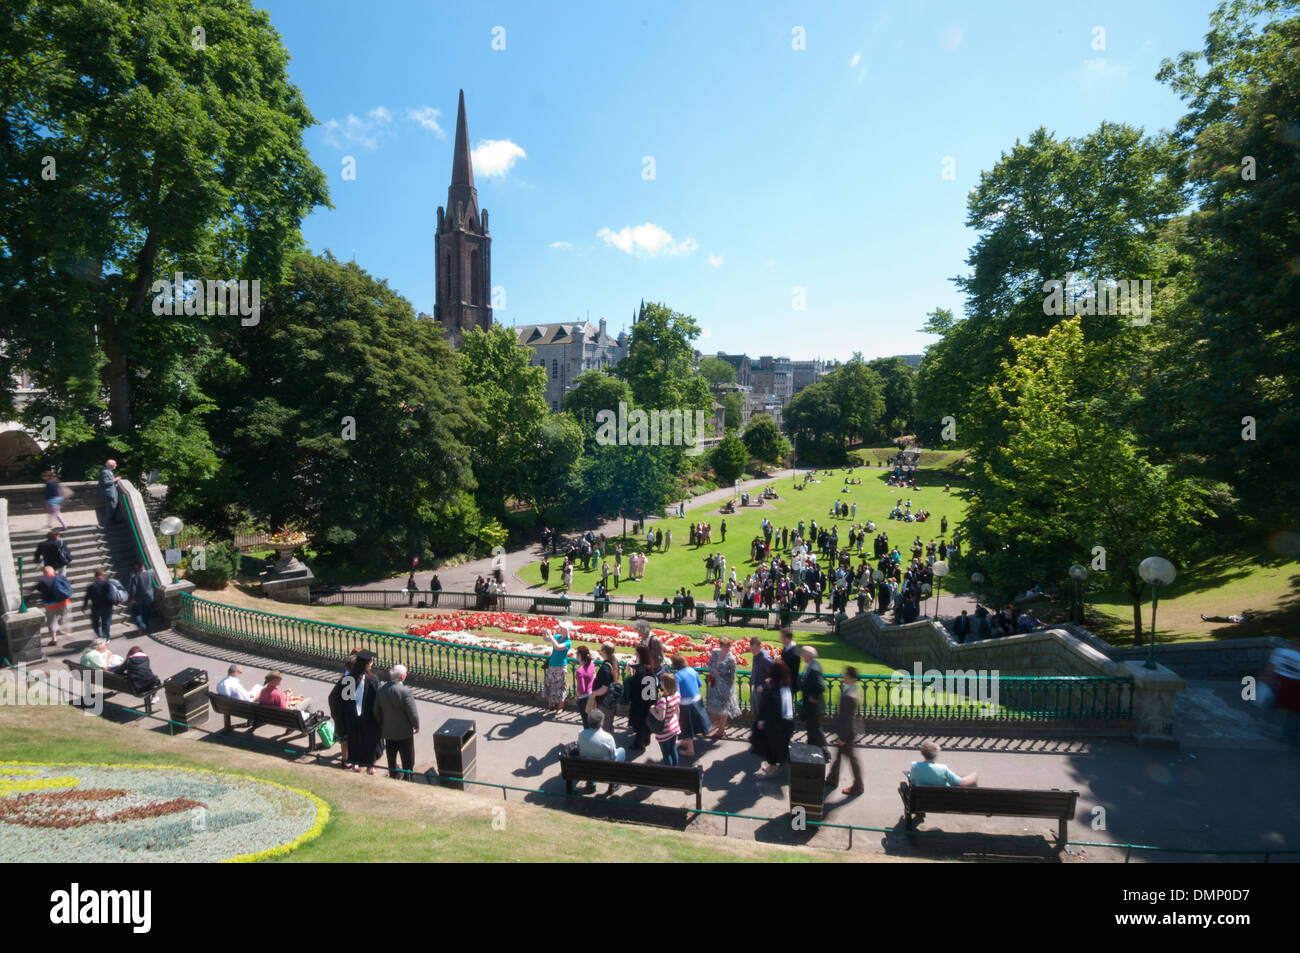 union terrace graduation party students sunny day - Stock Image